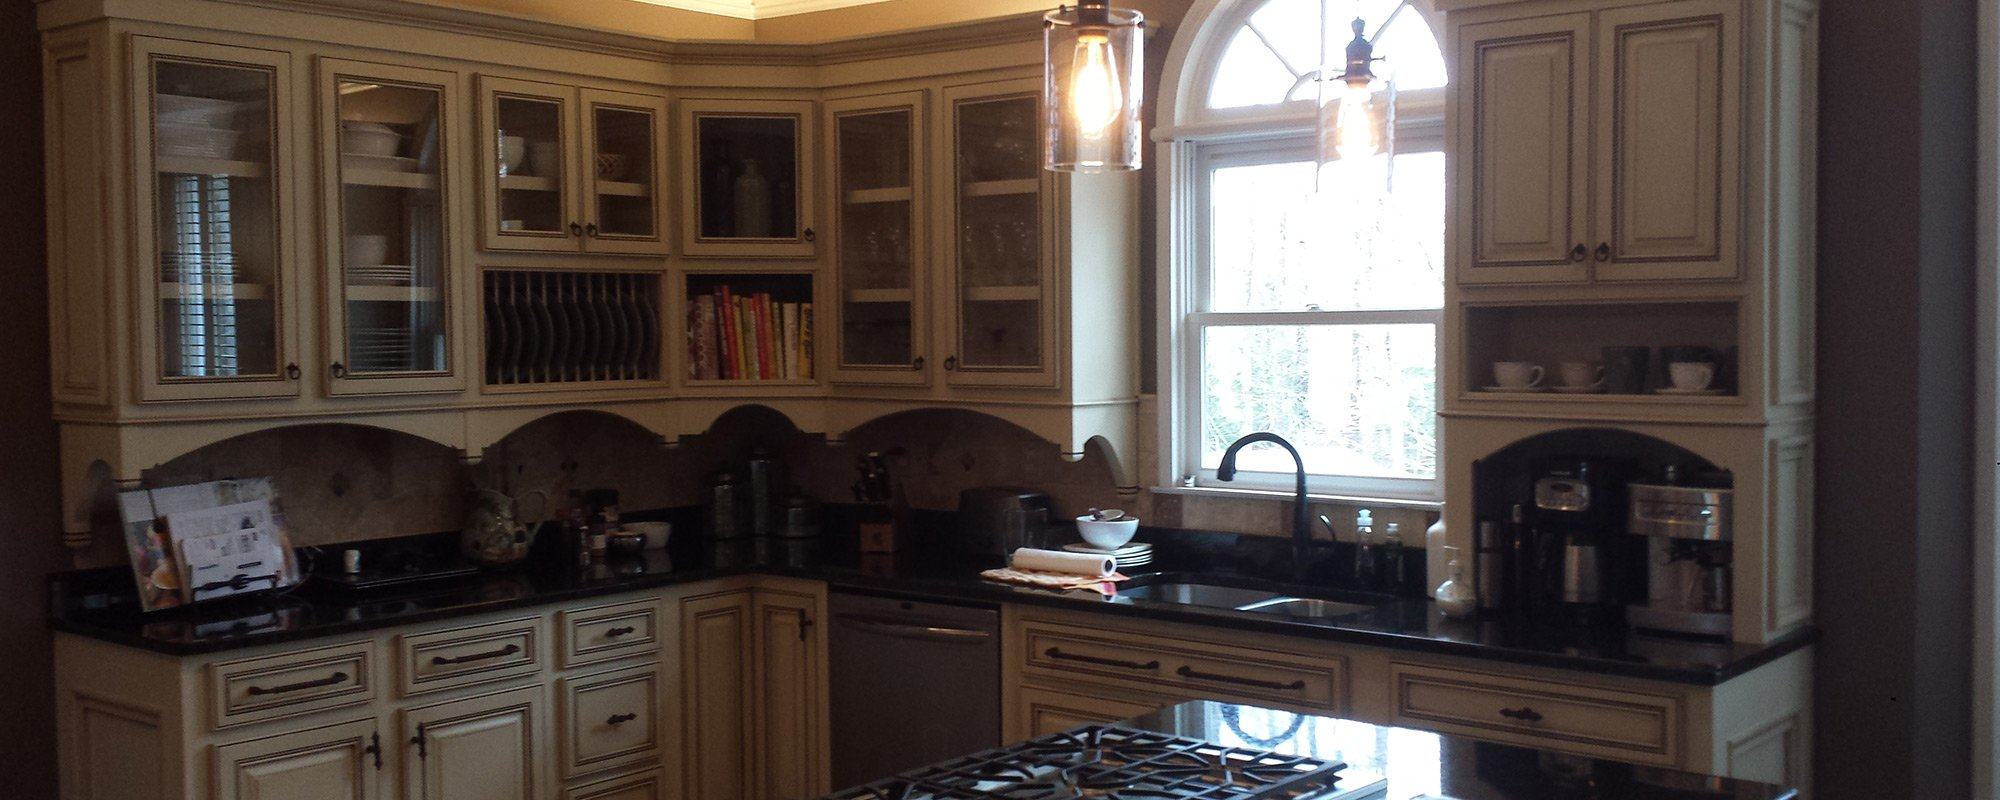 Best Price Kitchen Cabinets Best Price Custom Cabinets Cabinet Refacing Atlanta Ga